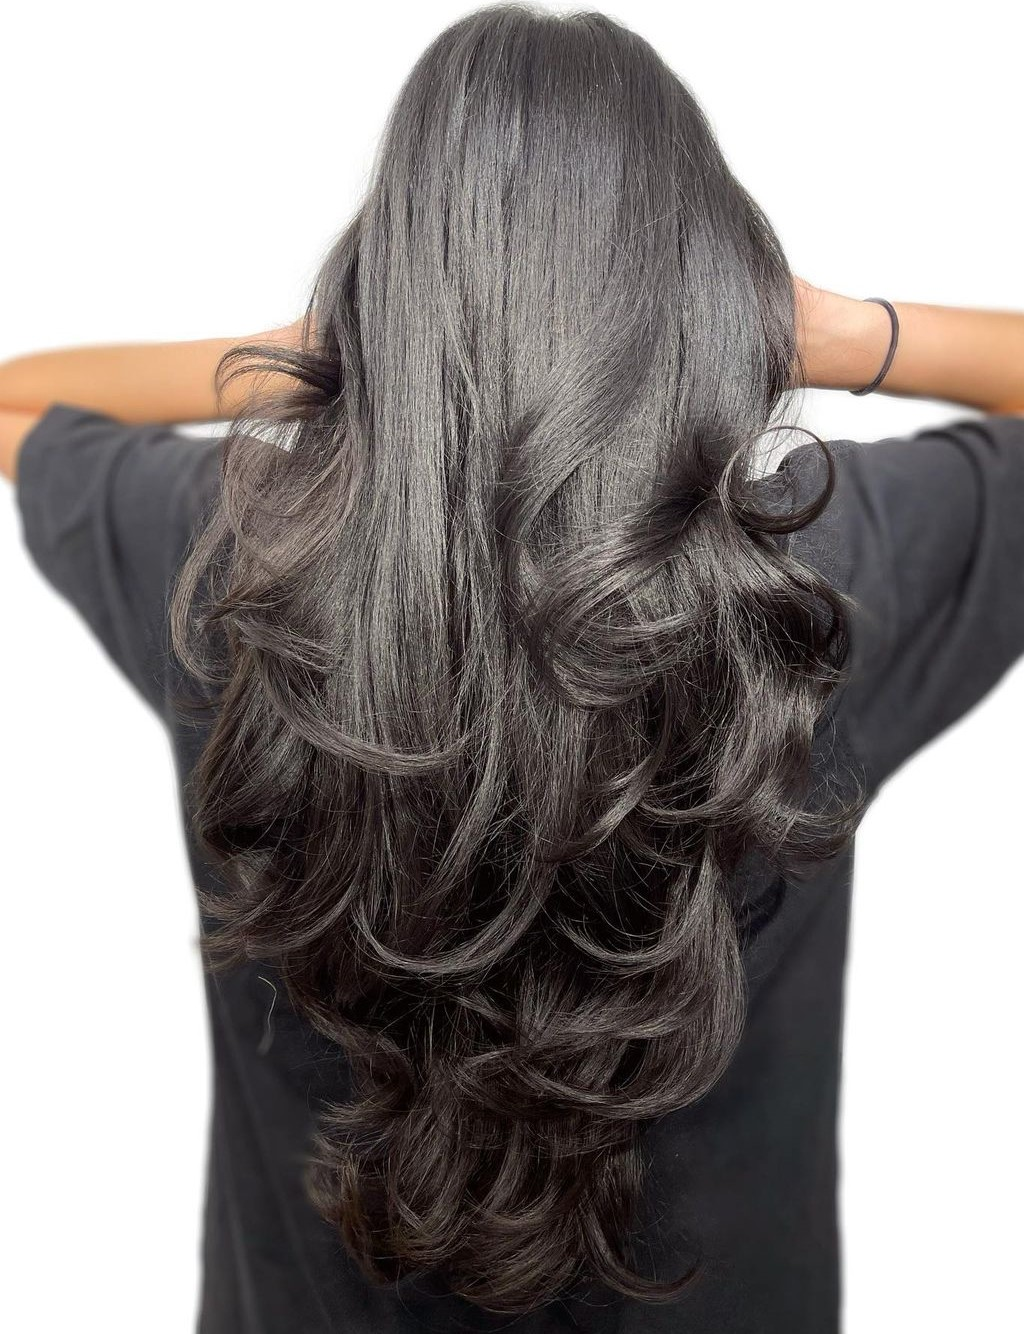 V-Cut with Layers and Curls